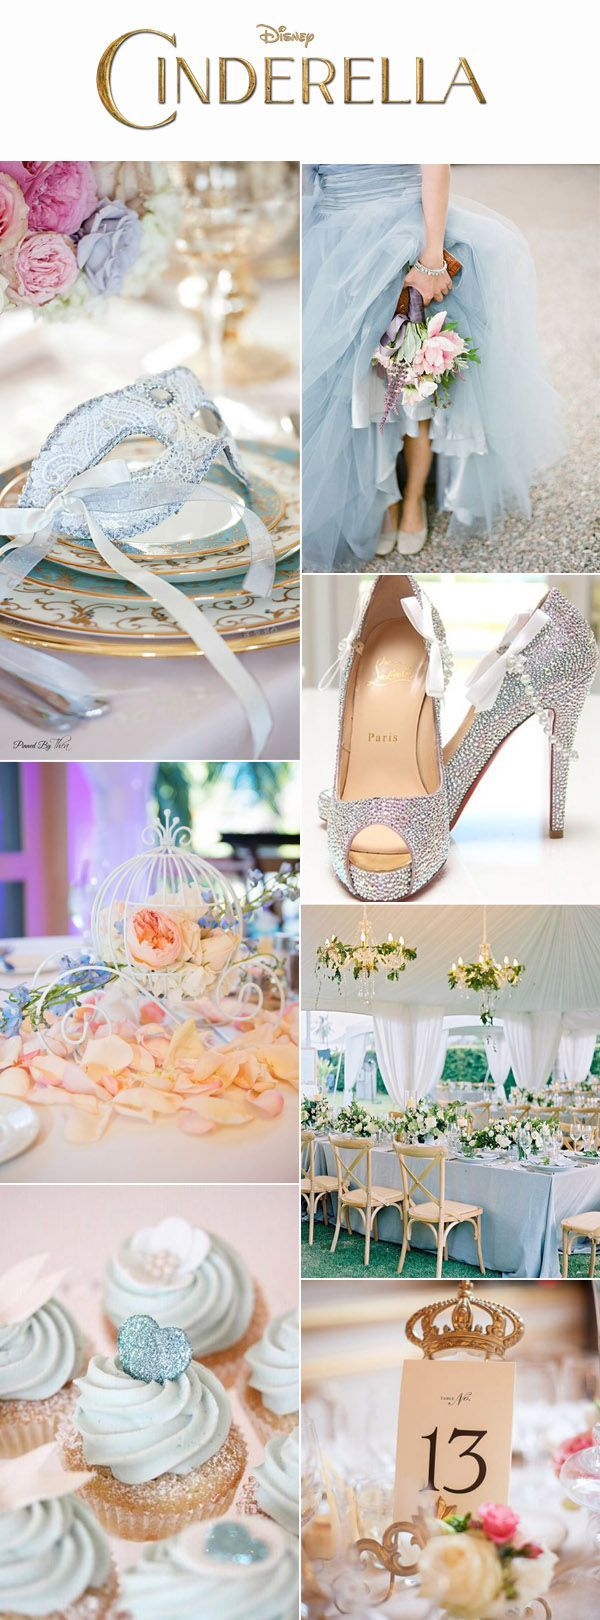 Cinderella Inspired Fairytale Wedding Details